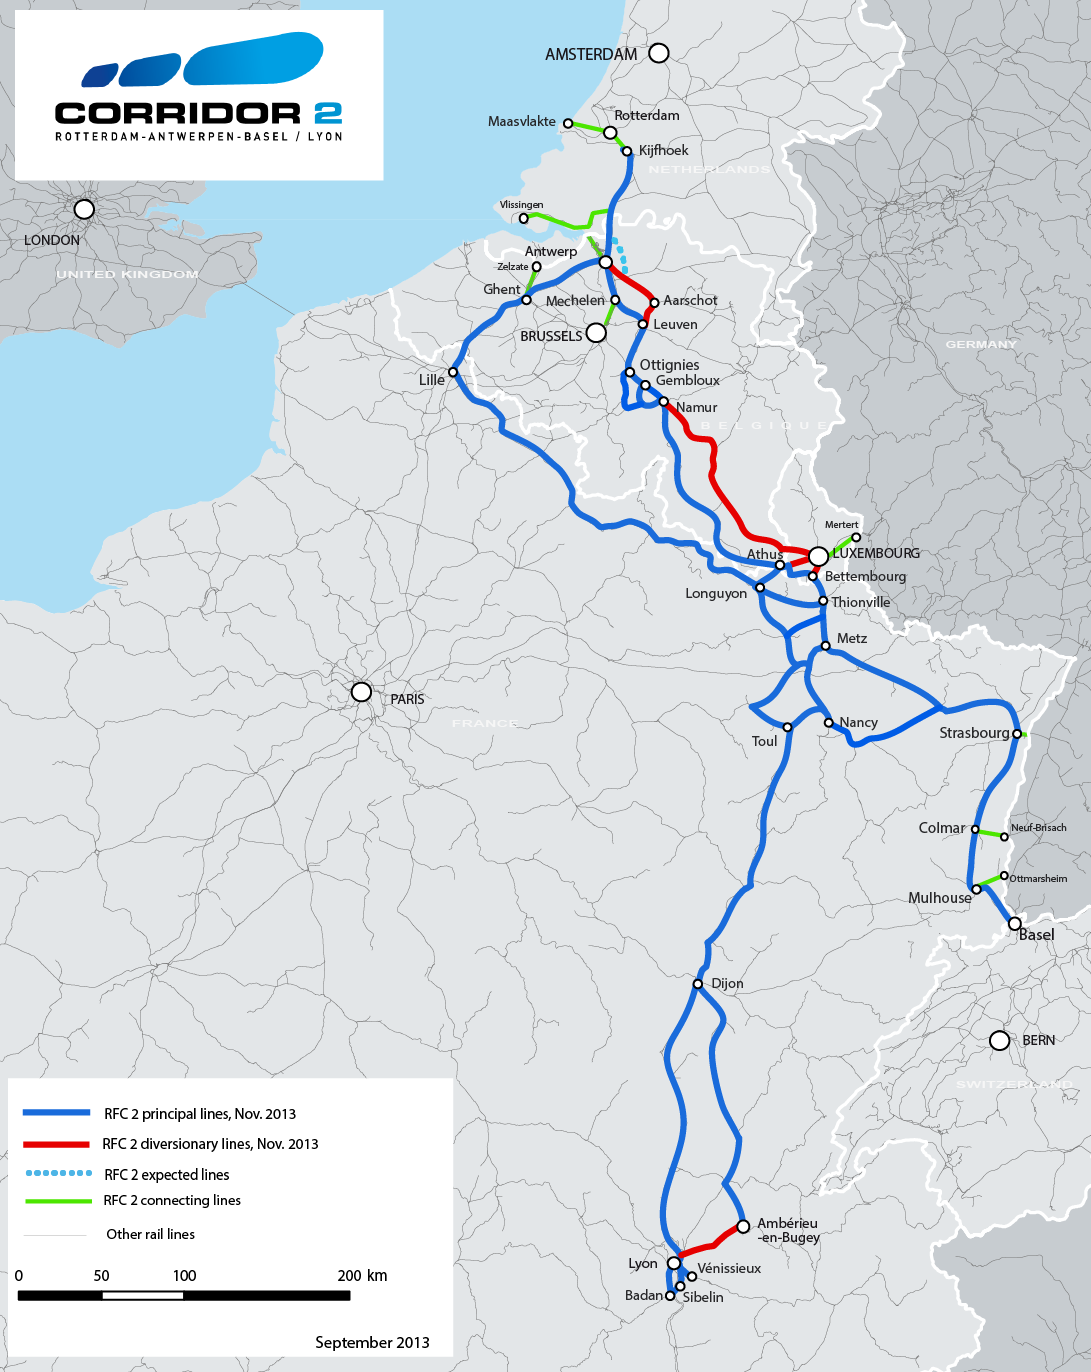 The RFC 2 routes will be established in three phases. The first phase concerns the routes which will compose the corridor in November 2013. They are shown on map 1.